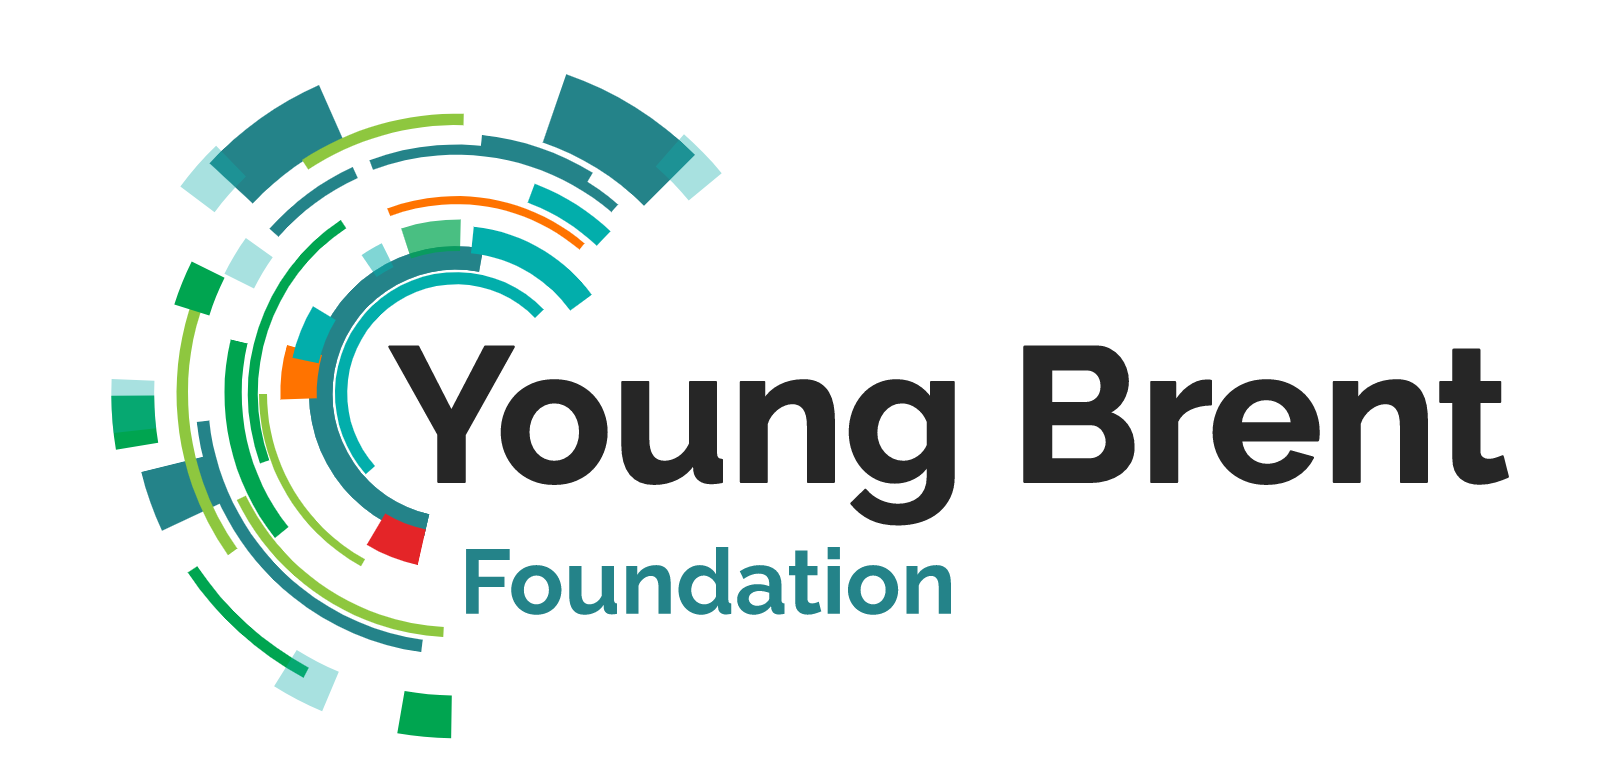 Young Brent Foundation